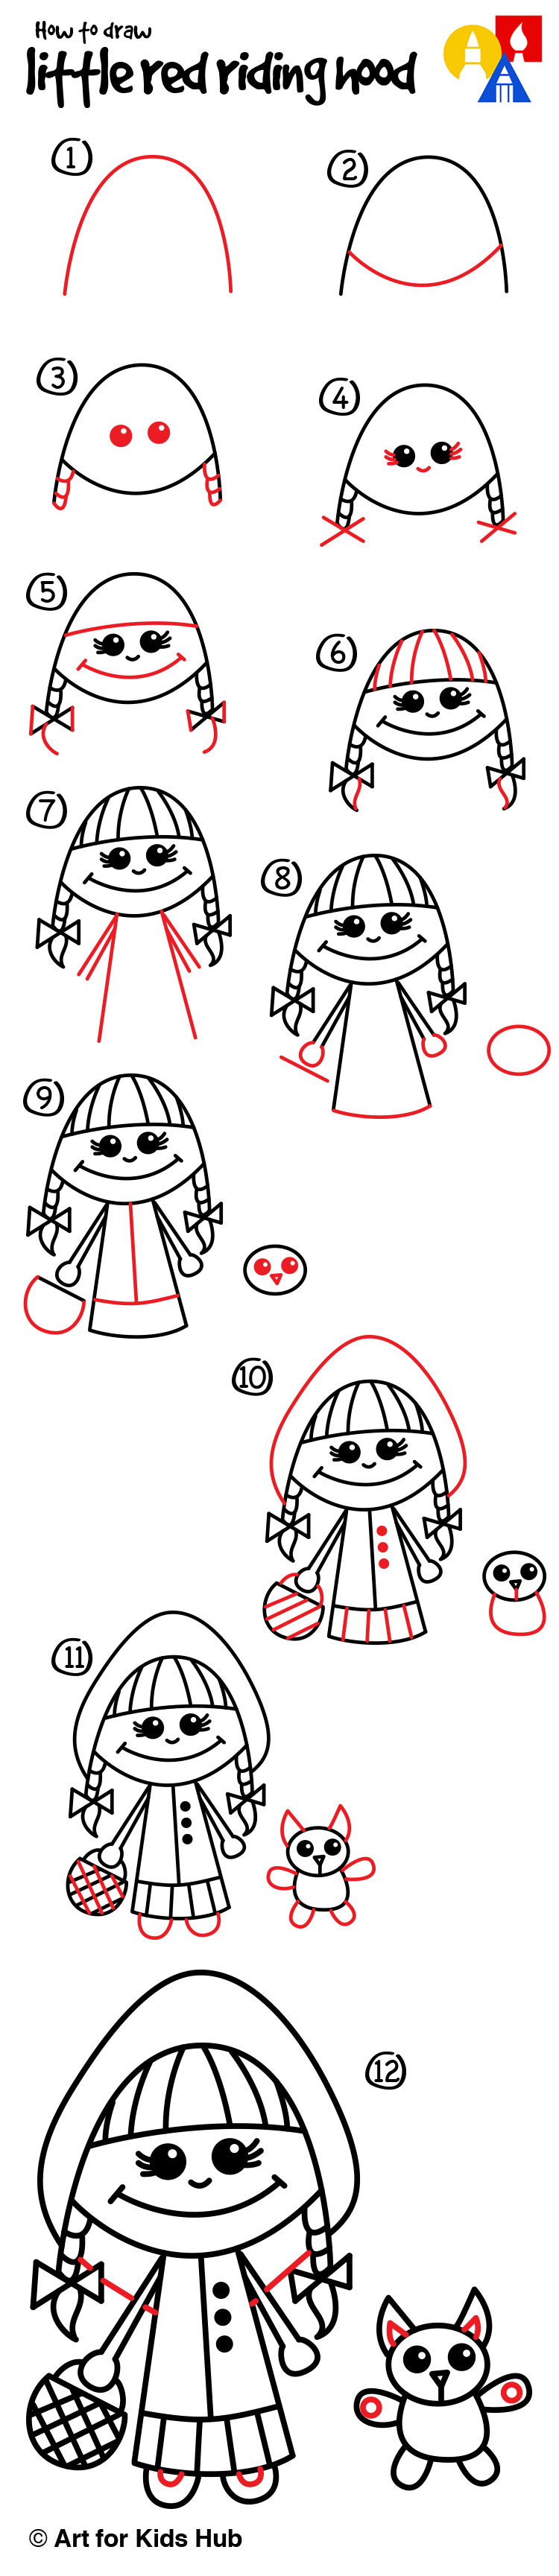 How To Draw Little Red Riding Hood - Art For Kids Hub ...